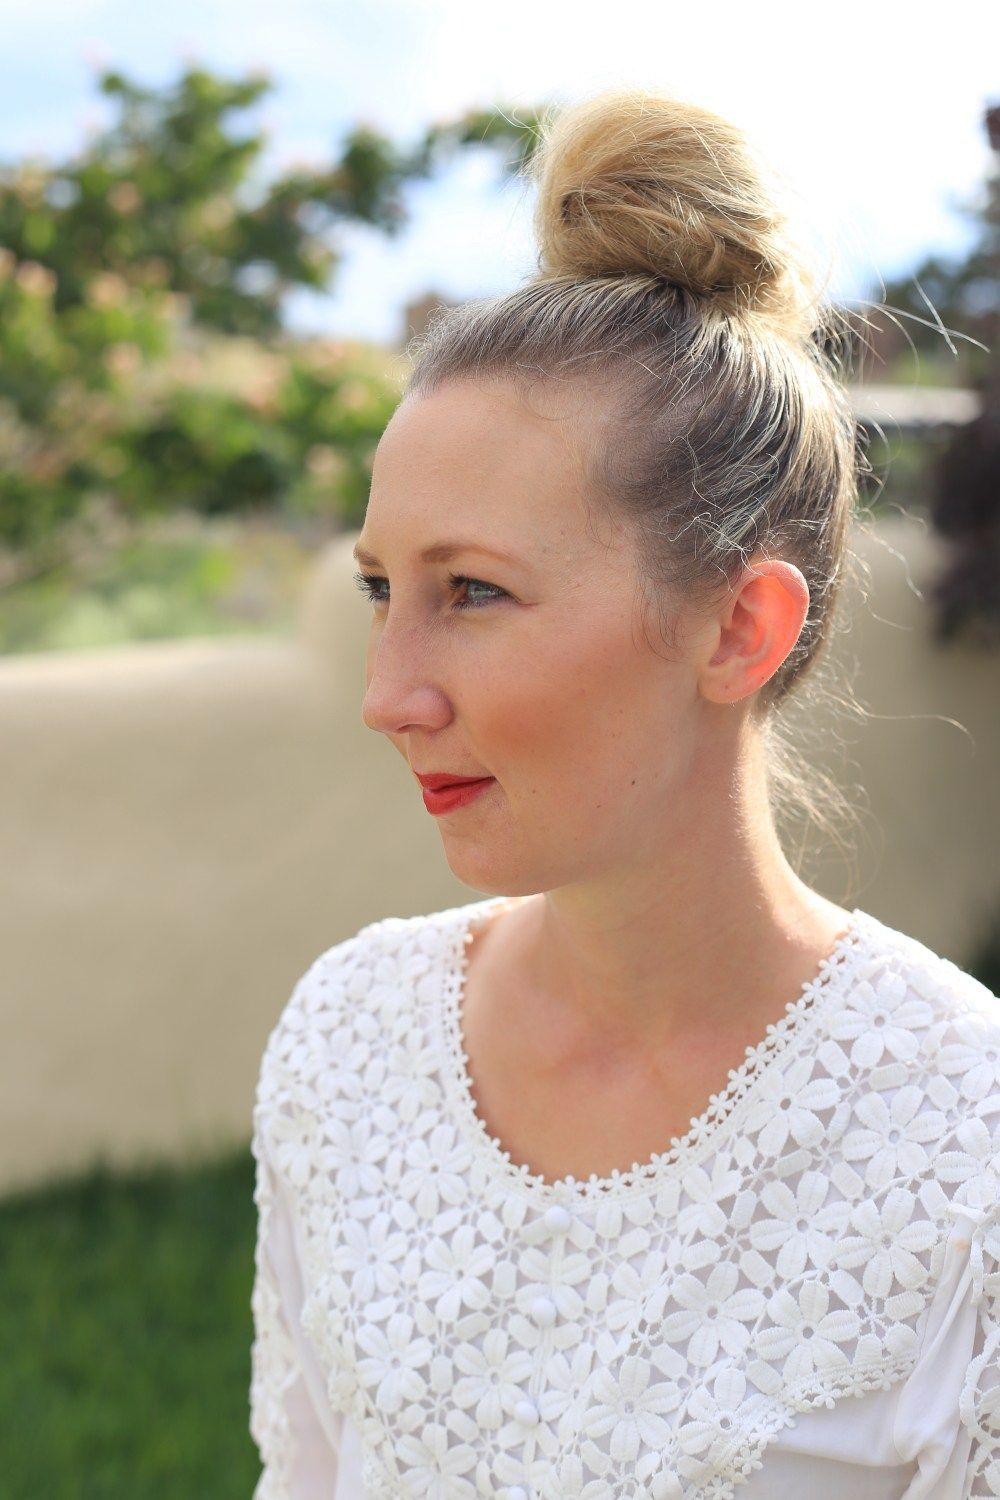 Top knot fluffy bun easy hairstyle ideas hair unwashed hairstyles